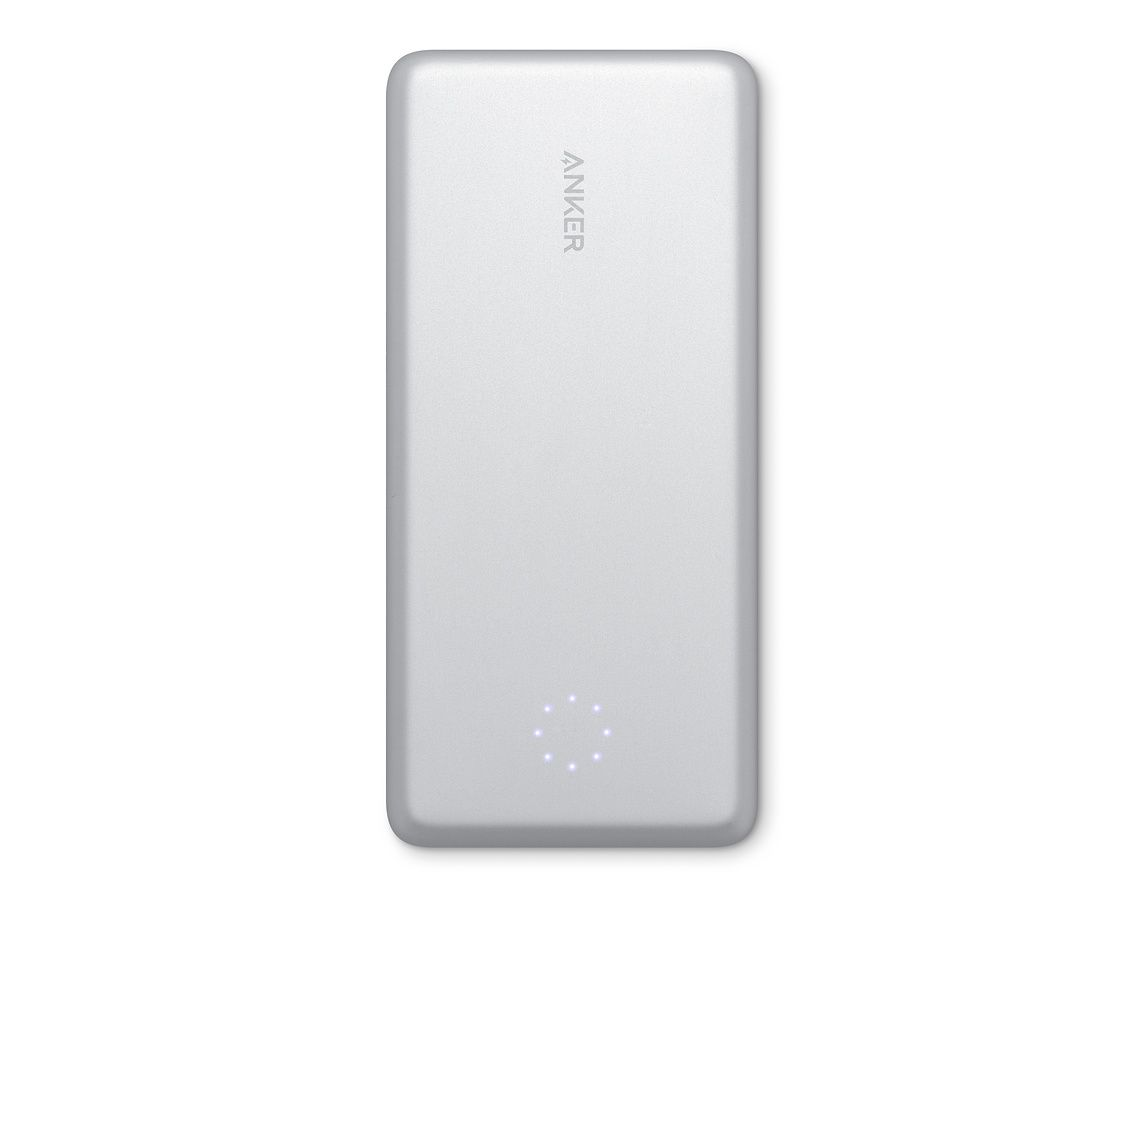 Anker Powercore 10000 Pro Portable Charger Silver Portable